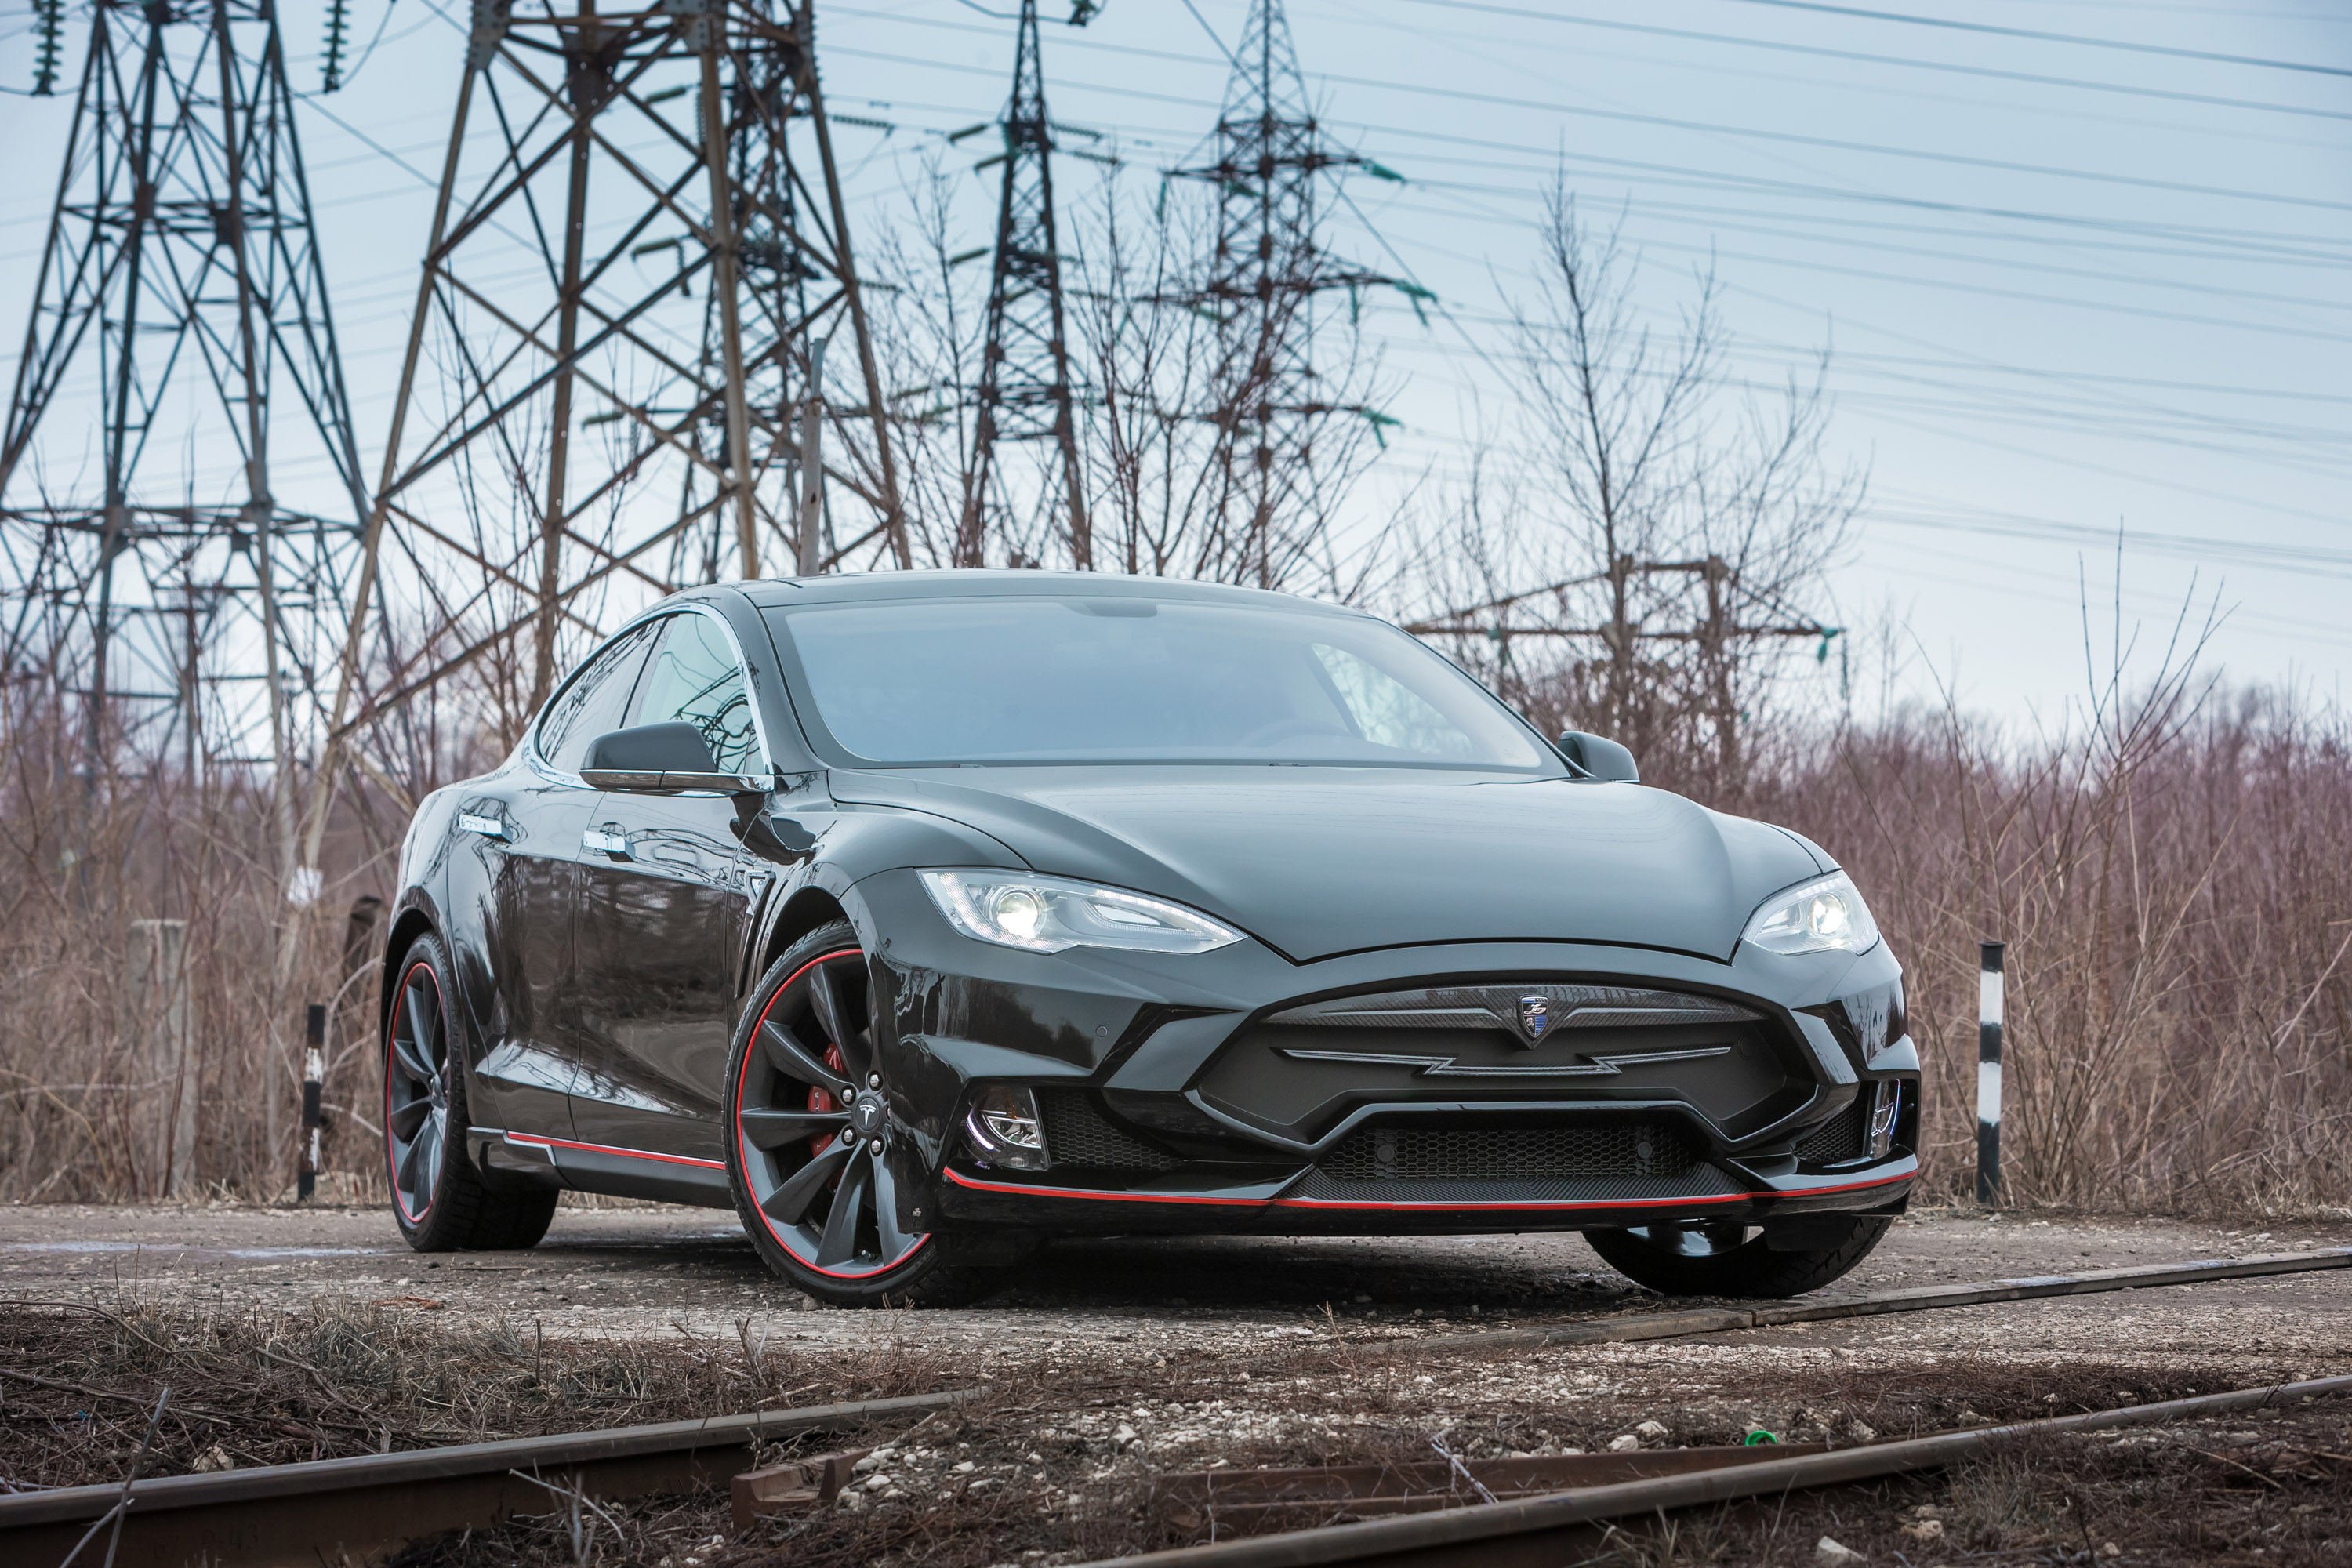 larte design tesla model s elizabeta revealed